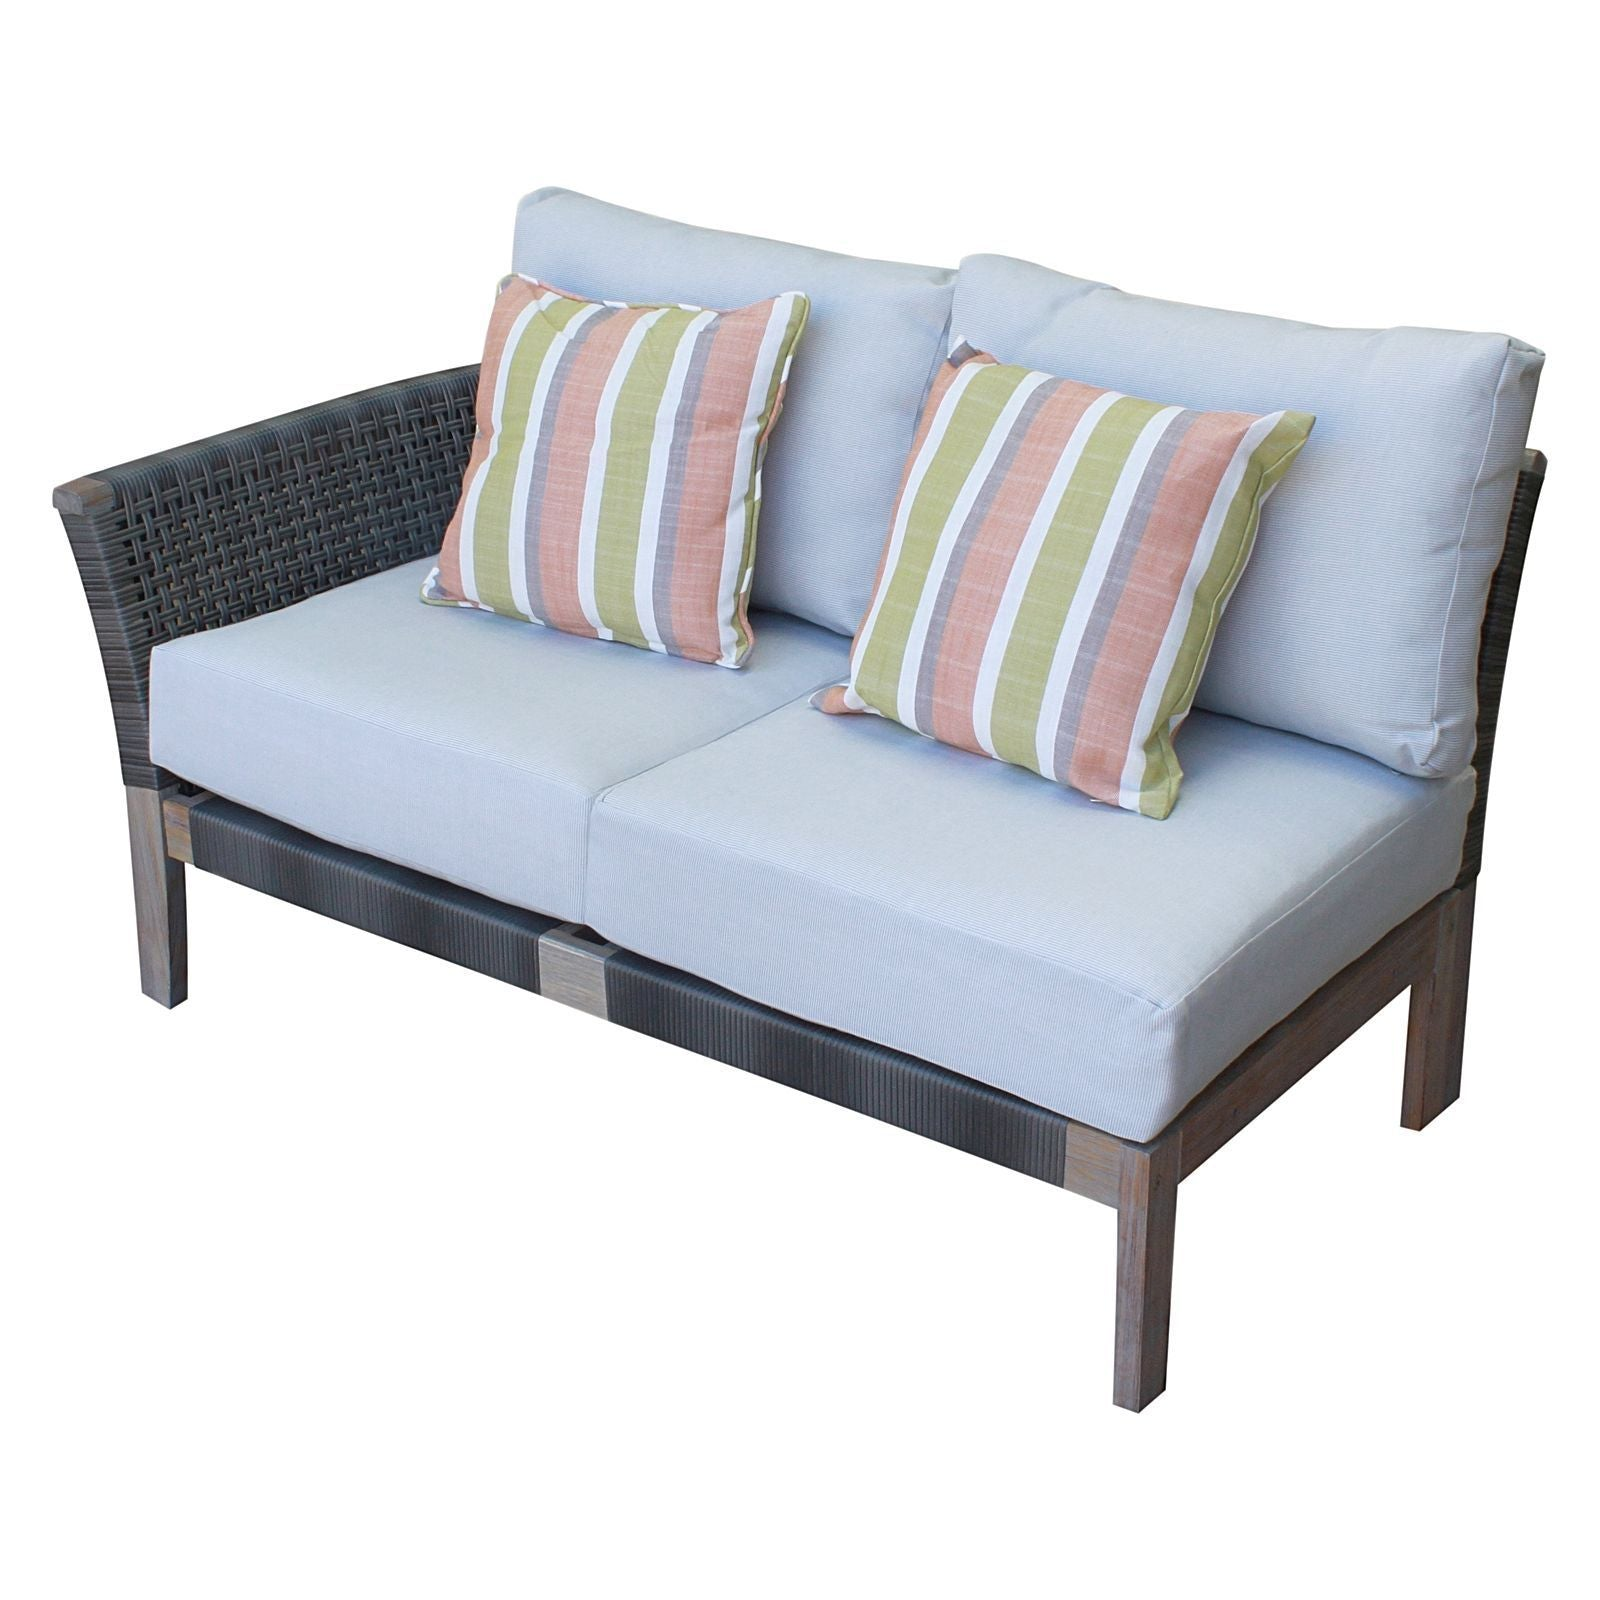 Paradise Outdoor Lounge, Right Arm - Outdoor Living Essentials